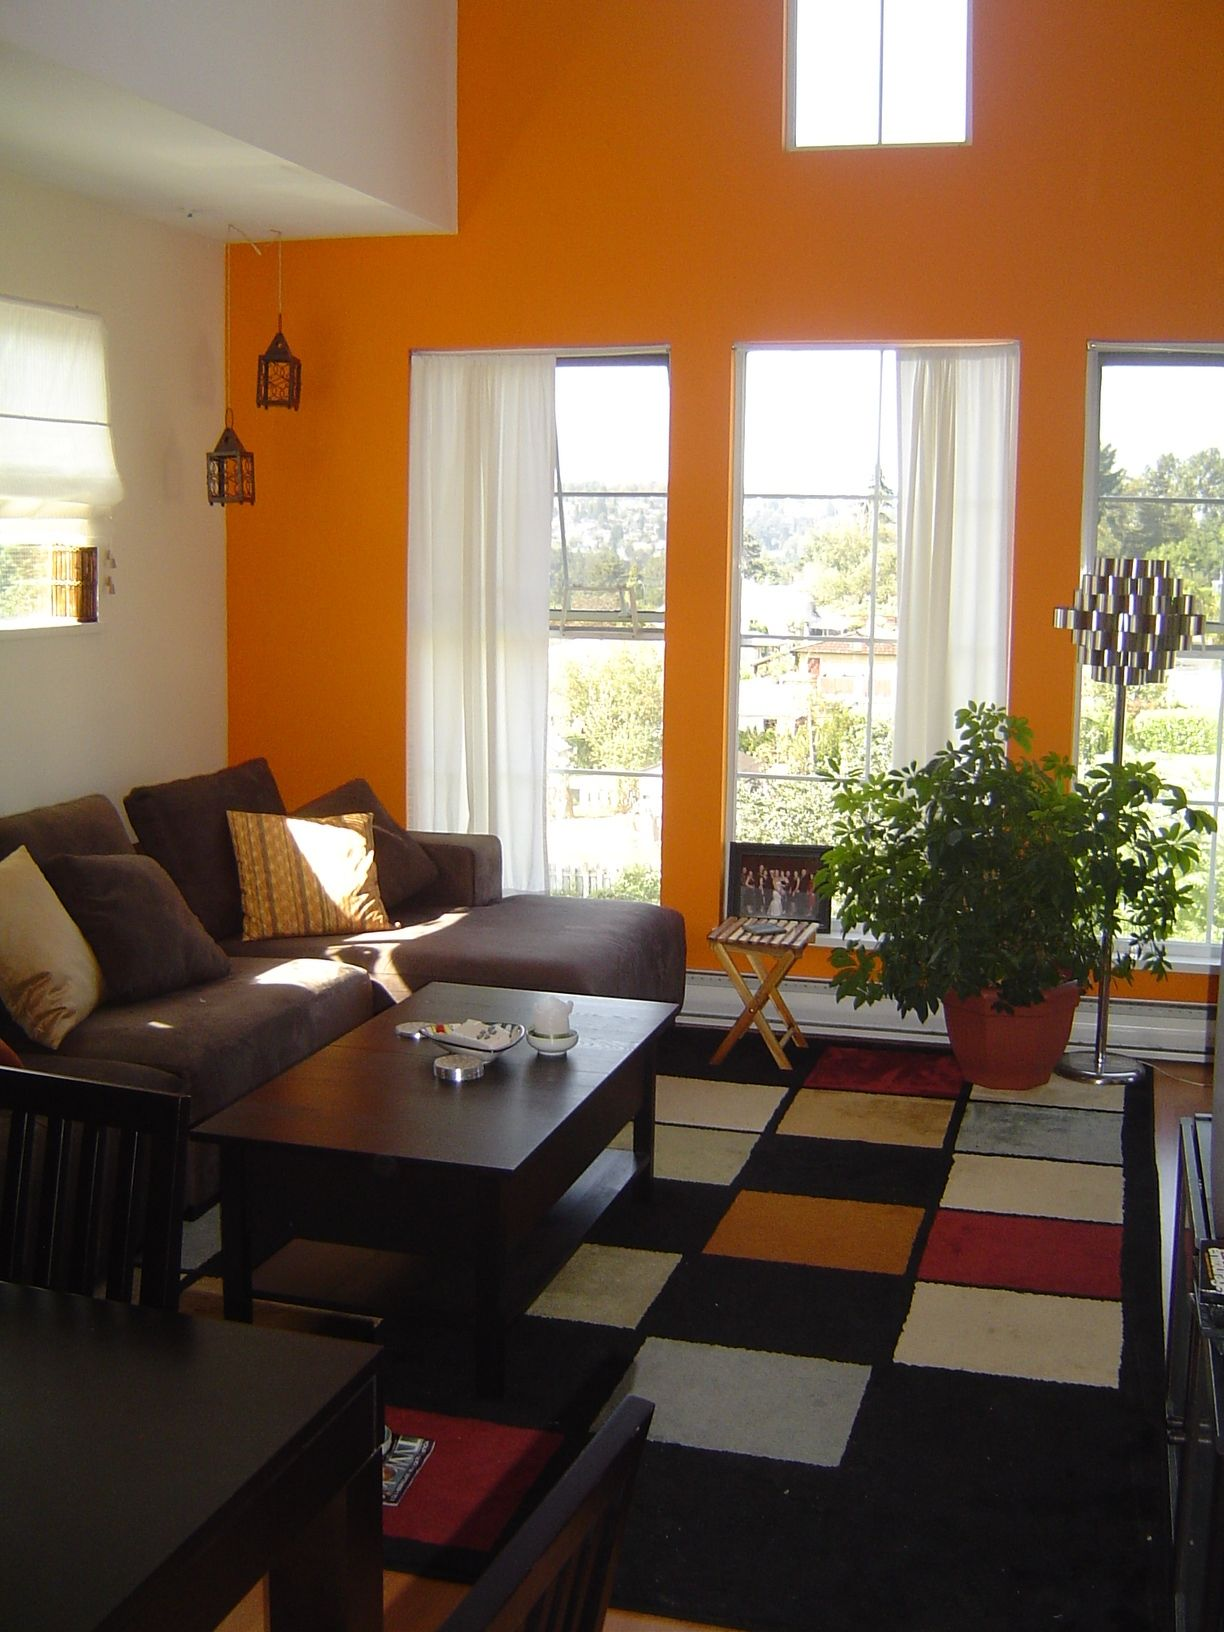 Experienced and dynamic vancouver interior designer and colour consultant · living room wall colorsorange